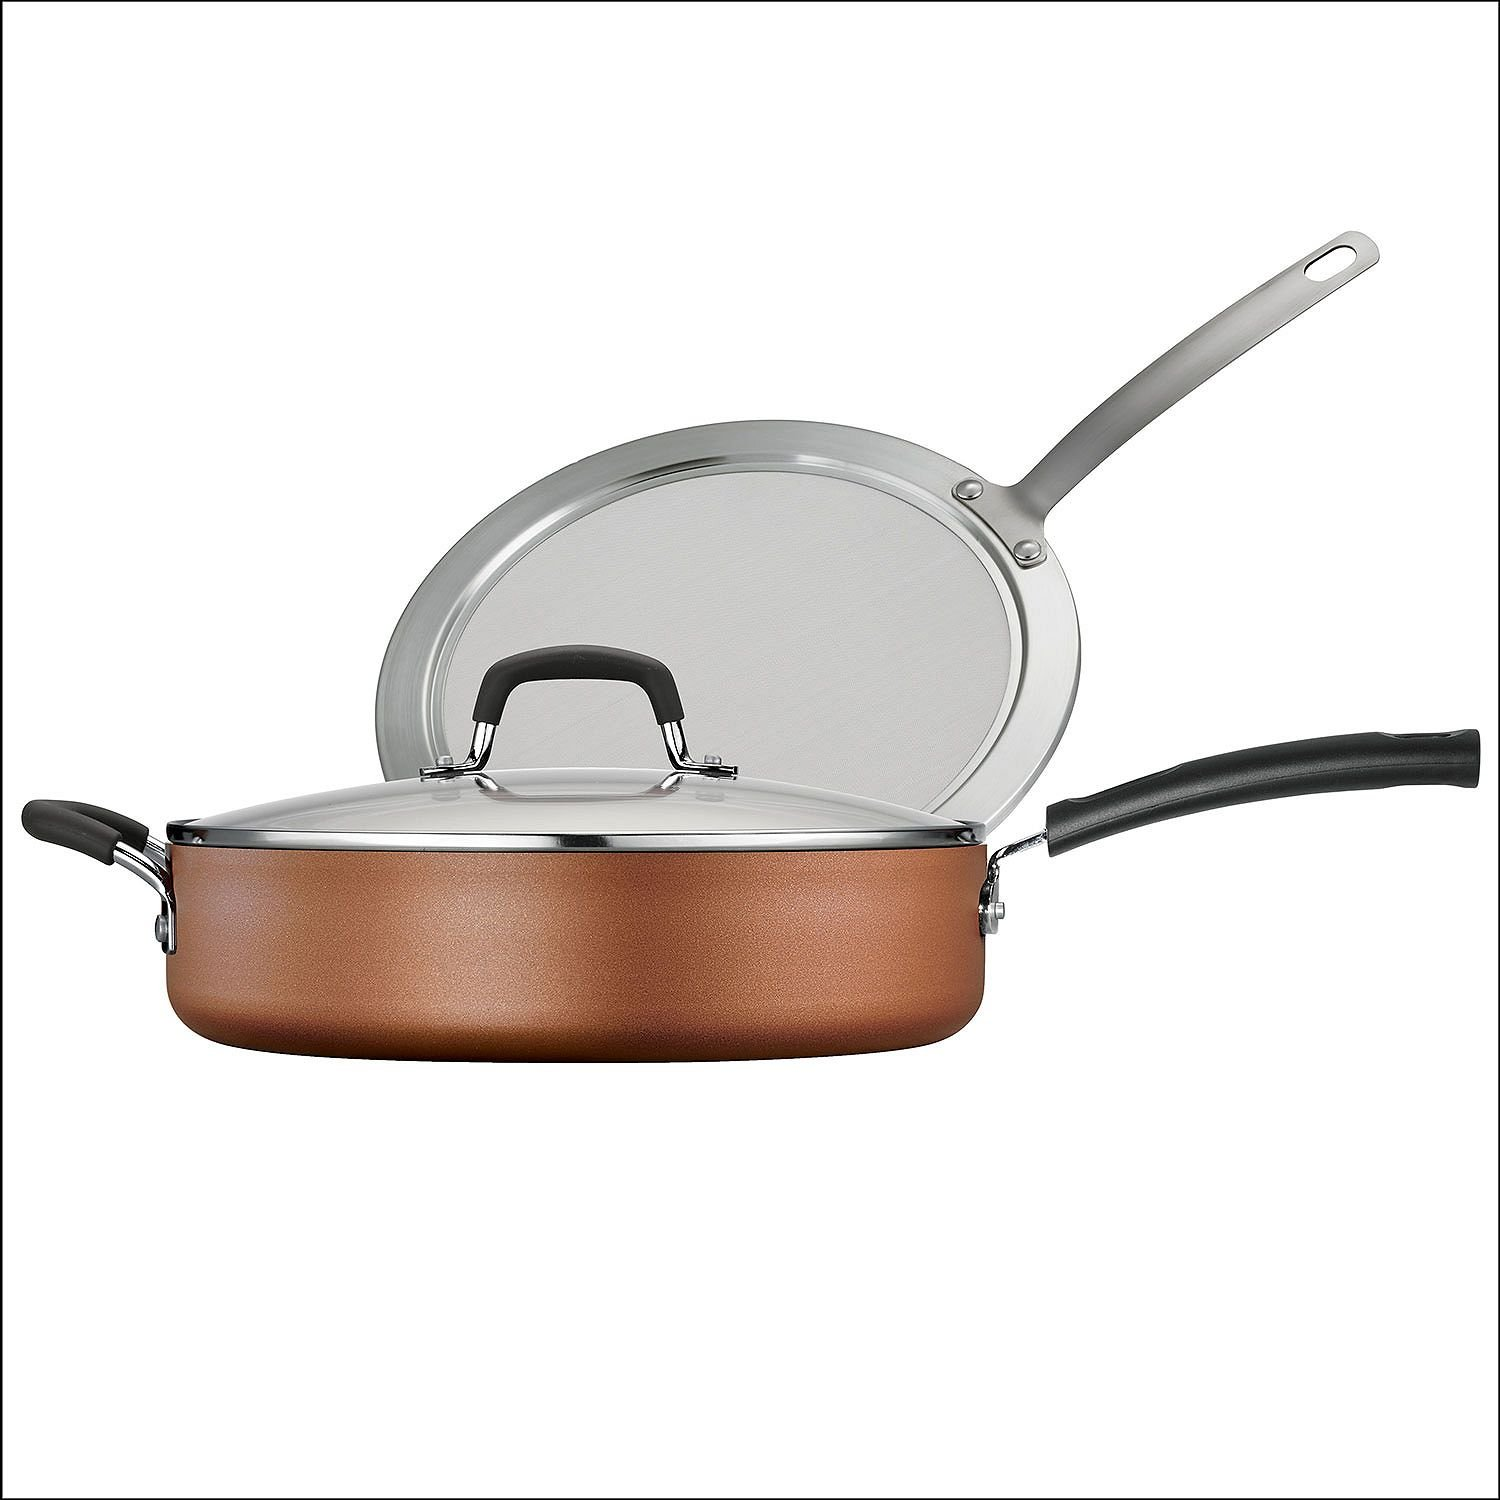 Tramontina 3-Piece Deep Saute Pan Set (Copper) - 80143/588